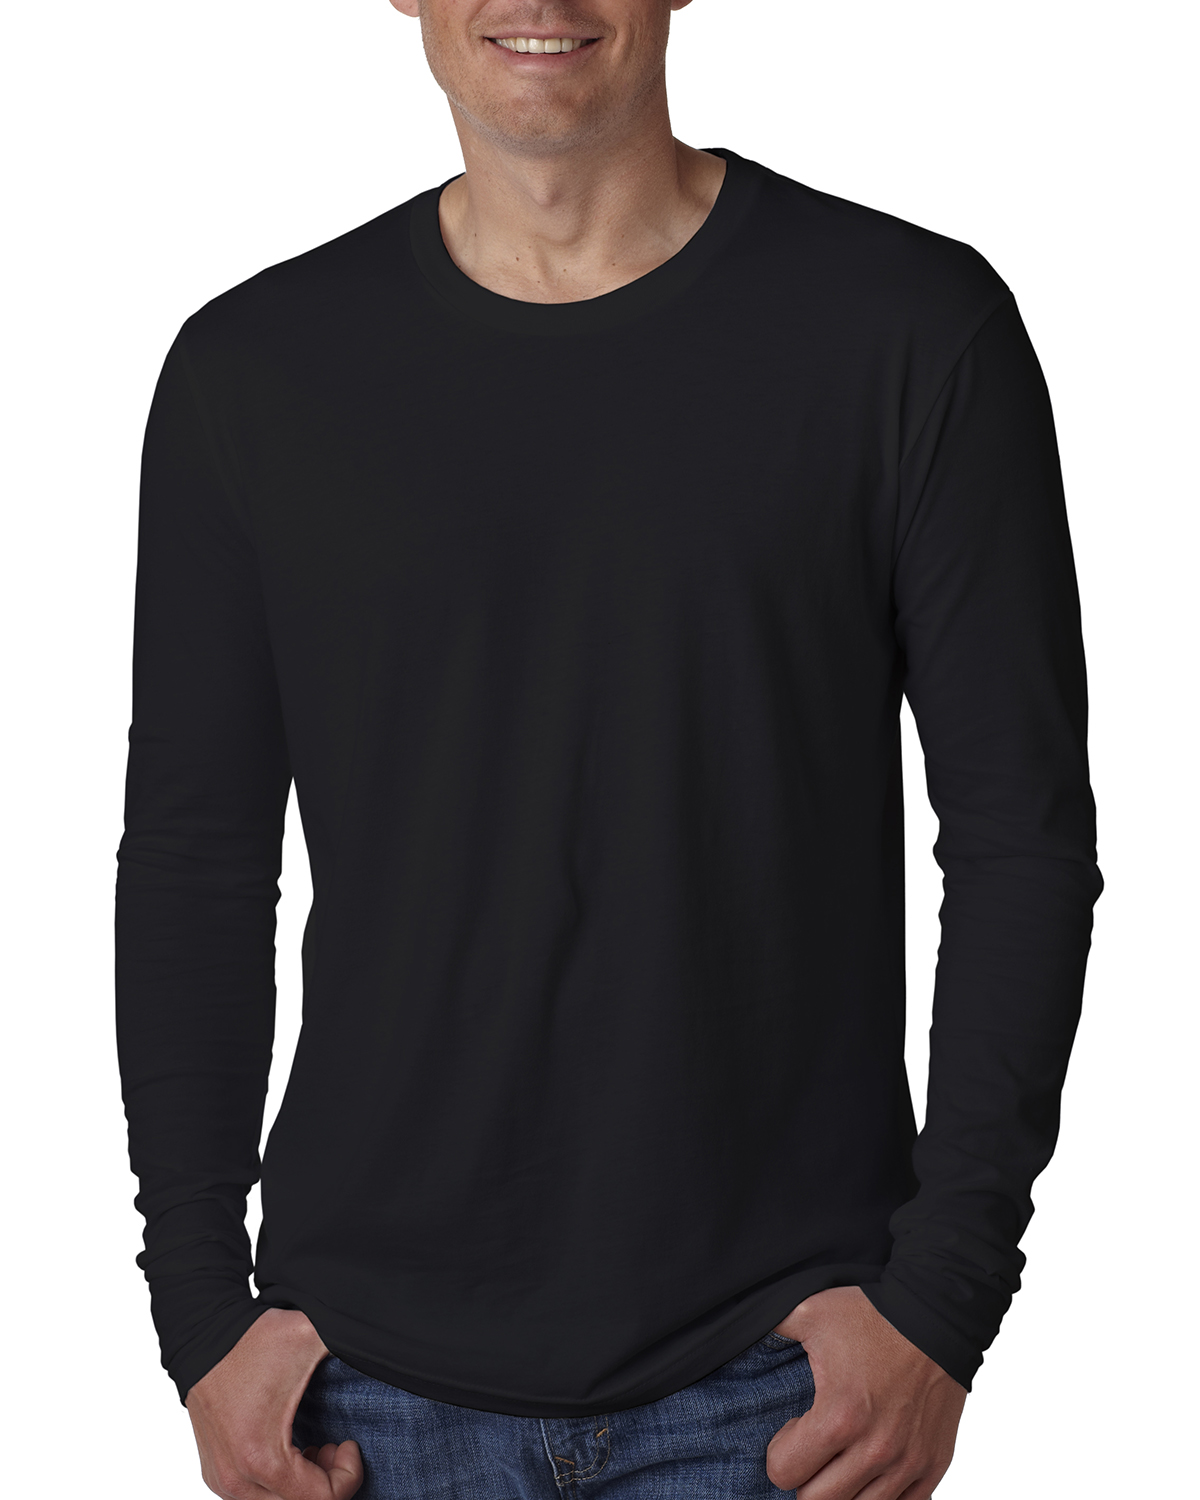 Next Level 3601 - Men's Long-Sleeve Cotton Crew